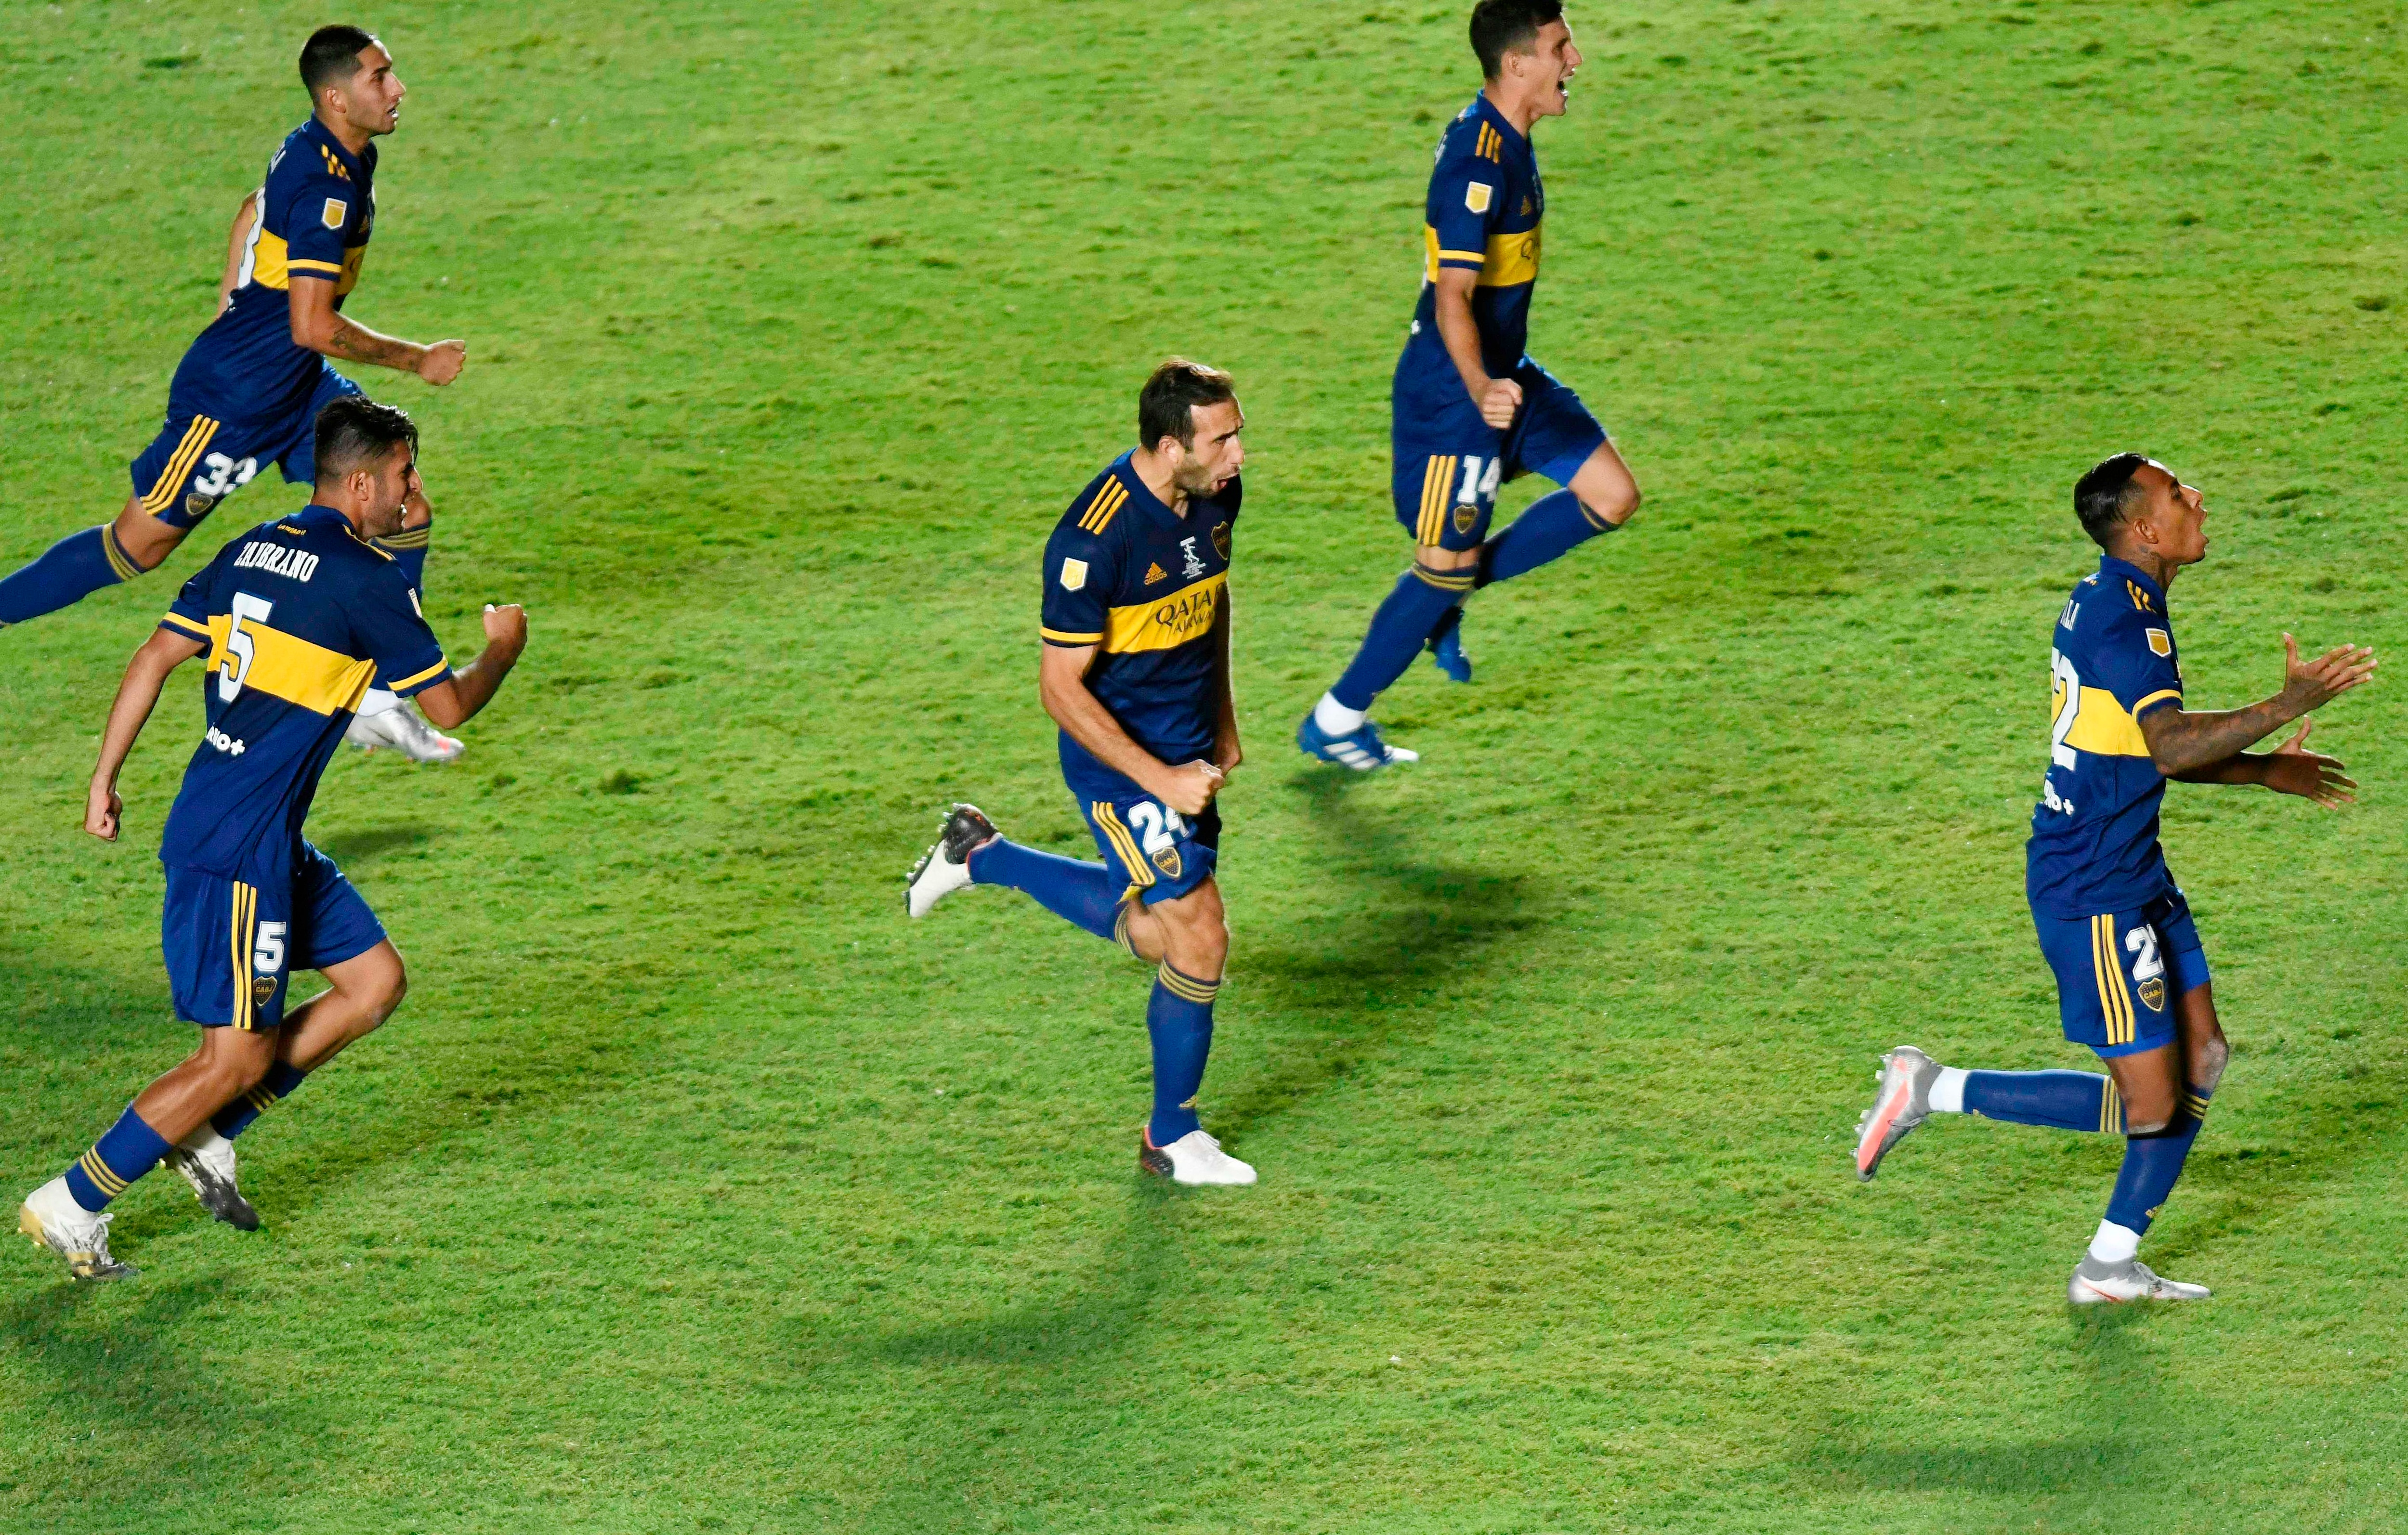 The moment in which Boca is enshrined champion in penalties against Banfield. The Diego Maradona Cup is heading to the Xeneize showcases